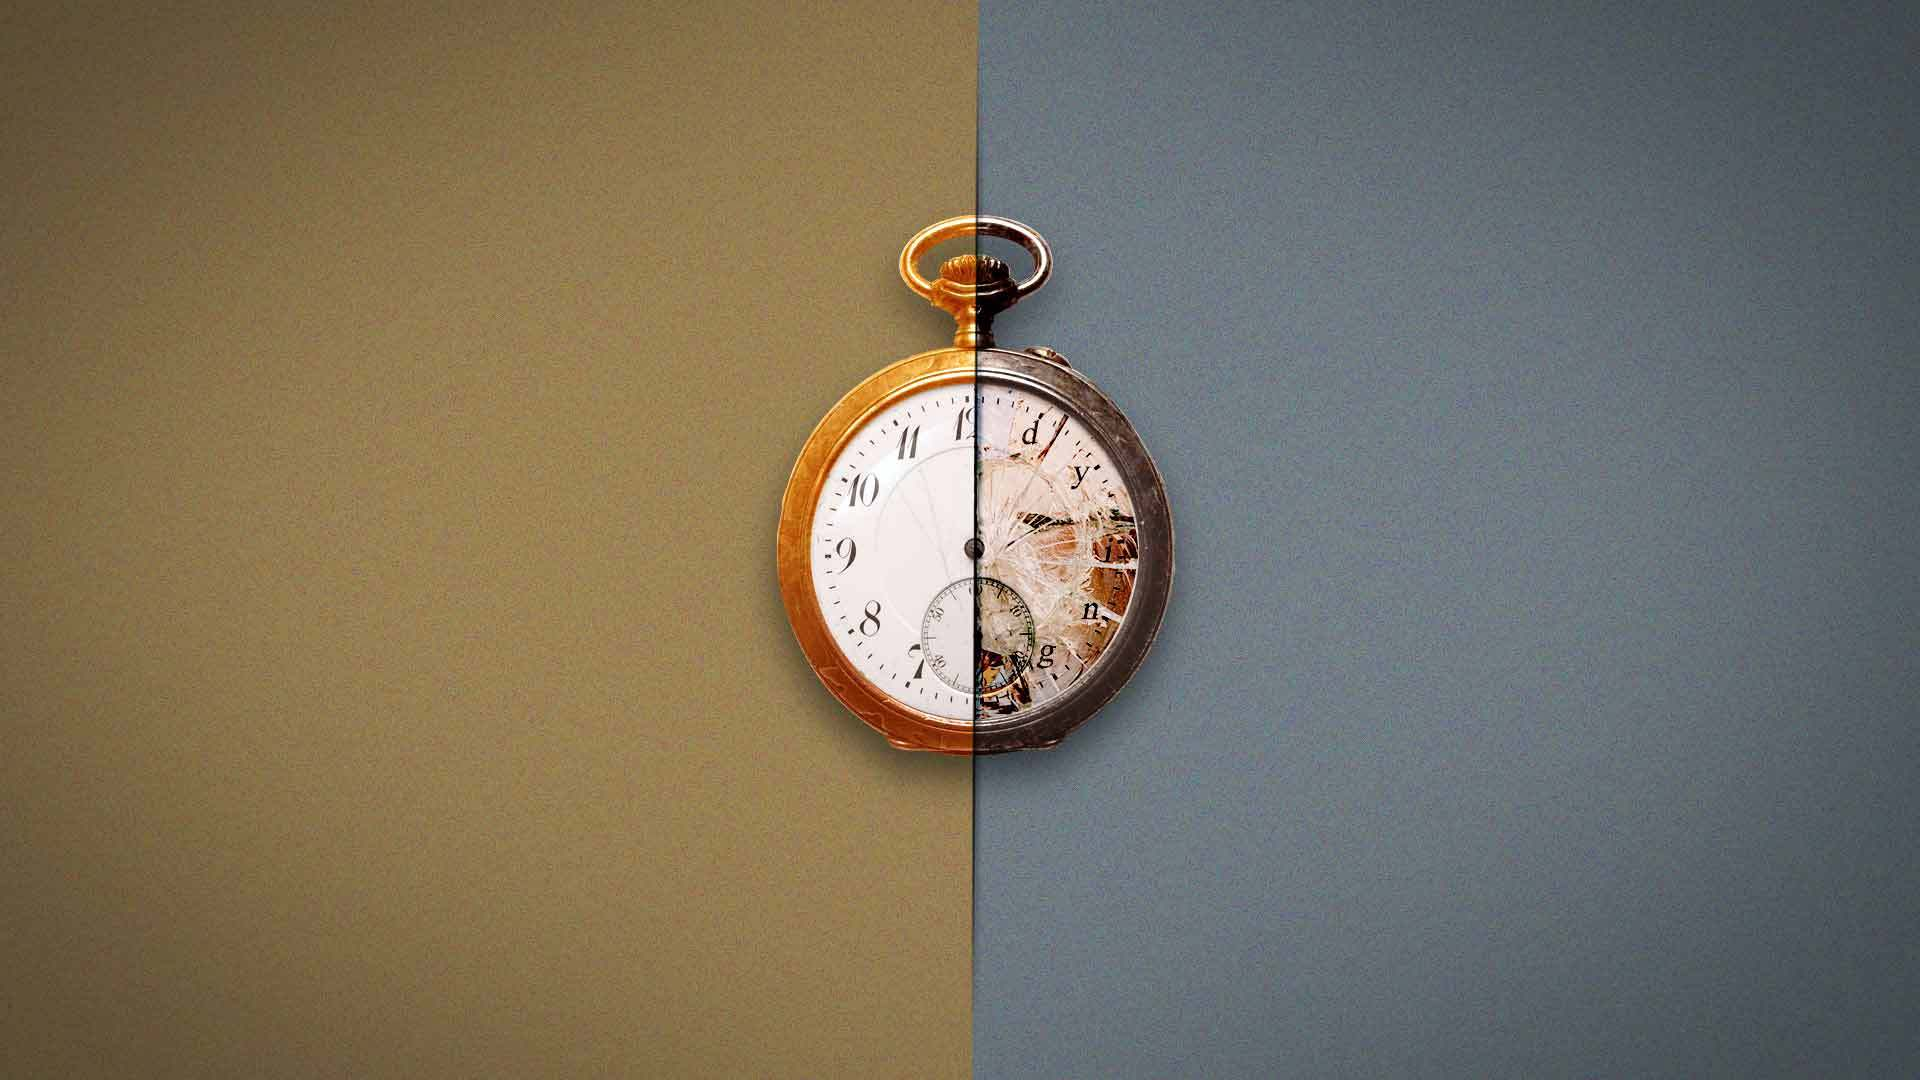 24123 download wallpaper Background, Objects, Clock screensavers and pictures for free